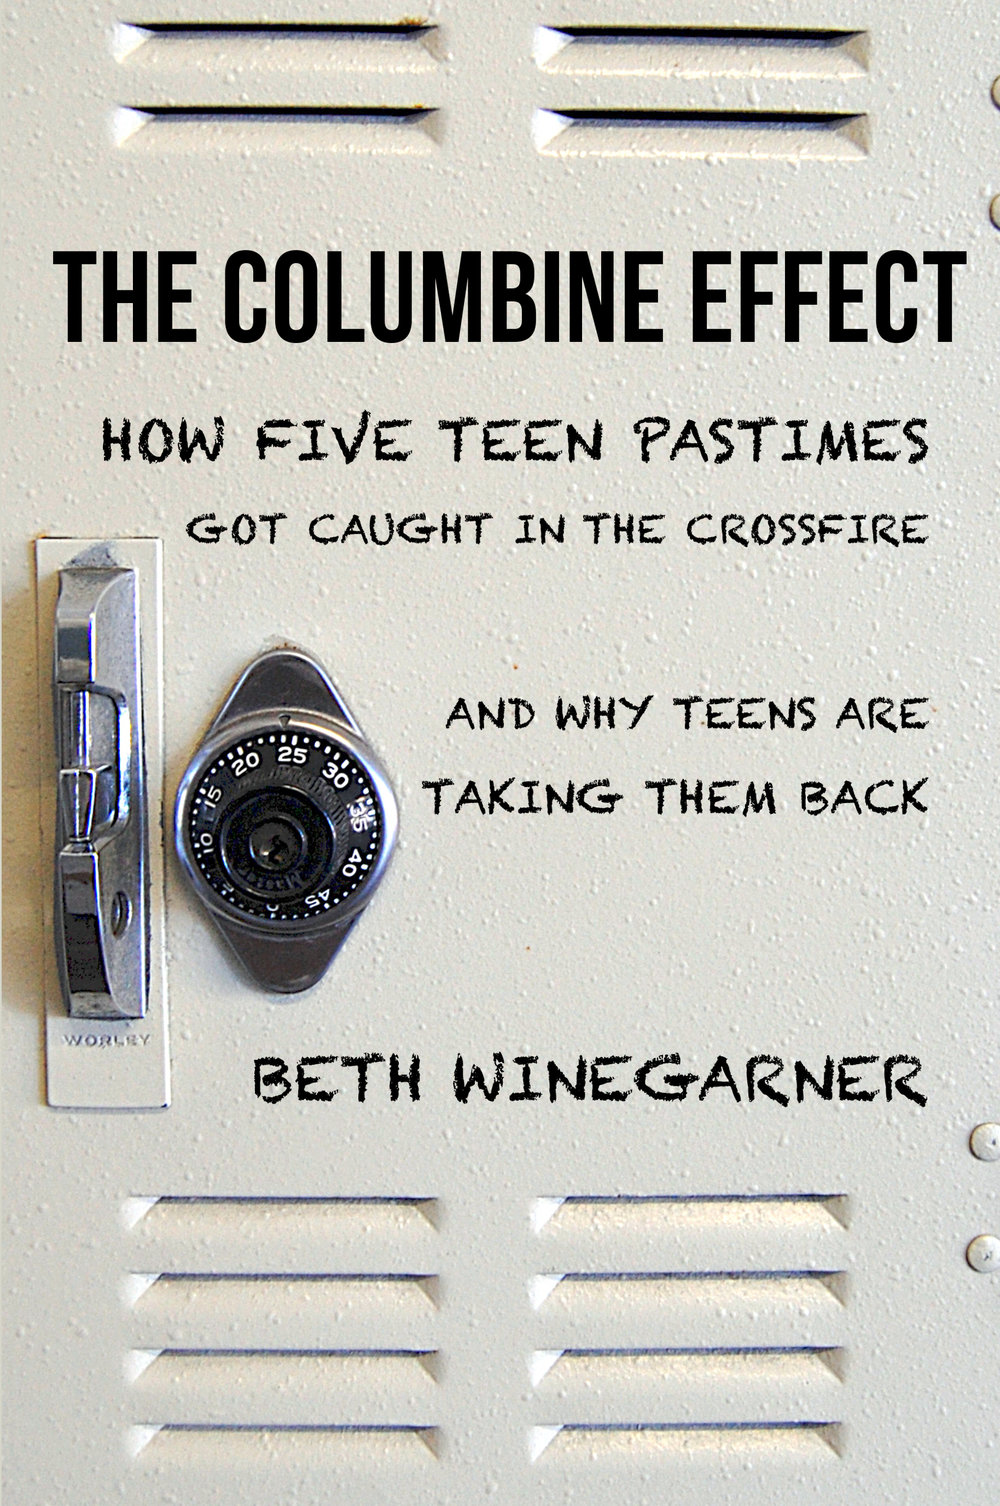 About the book - Columbine High School shooters Eric Harris and Dylan Klebold weren't goth kids who played more Doom than their classmates. But after news outlets reported they were, teen goths and gamers felt the backlash for years. As police and journalists have rushed to explain other unthinkable massacres, heavy metal music, paganism, Satanism, occult practices and role-playing games have unfairly gotten caught in the crossfire.Adolescents' brains may still be developing, but they recognize the rich benefits of pastimes adults have deemed dangerous.The Columbine Effectis filled with teens' stories of self-discovery and healing –and the research to back them up. It reveals how we arrived at such gross misunderstandings of common but controversial interests.The Columbine Effectis the book that will make us stop blaming teen violence on the wrong things – and help us understand how Slayer, Satanism and Grand Theft Auto can be a healthy part of growing up.Praise for The Columbine Effect: